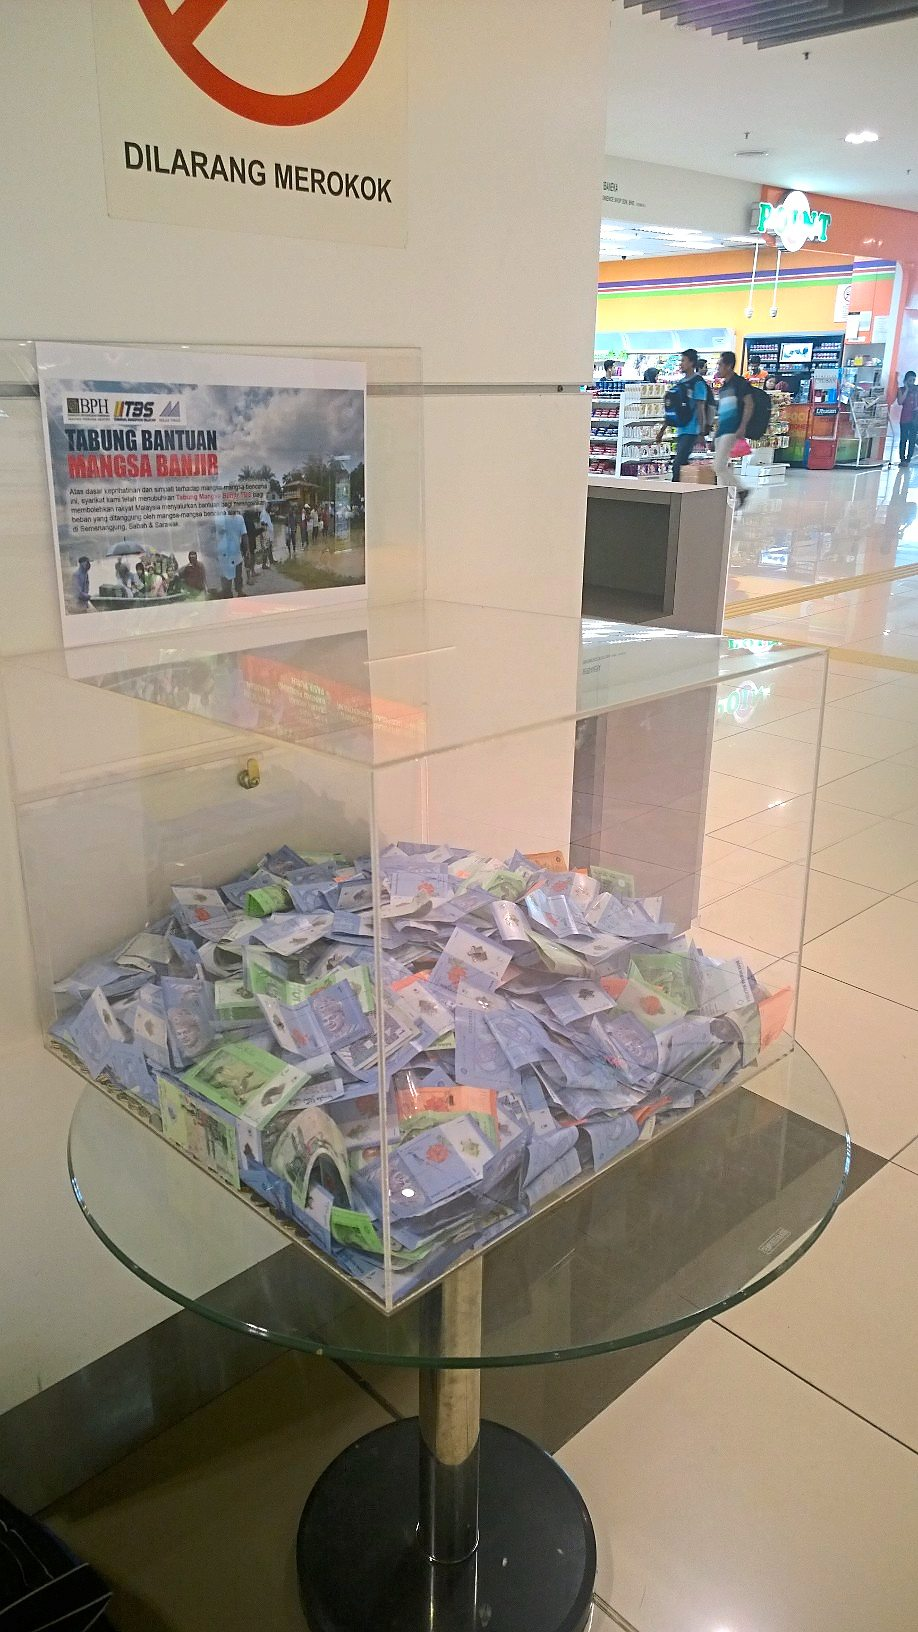 For victims: One of the two collection boxes in Terminal Bersepadu Selatan, located in the main hall area, that goes to helping disaster victims in Malaysia, the current goal being to help the flood victims in Kelantan.